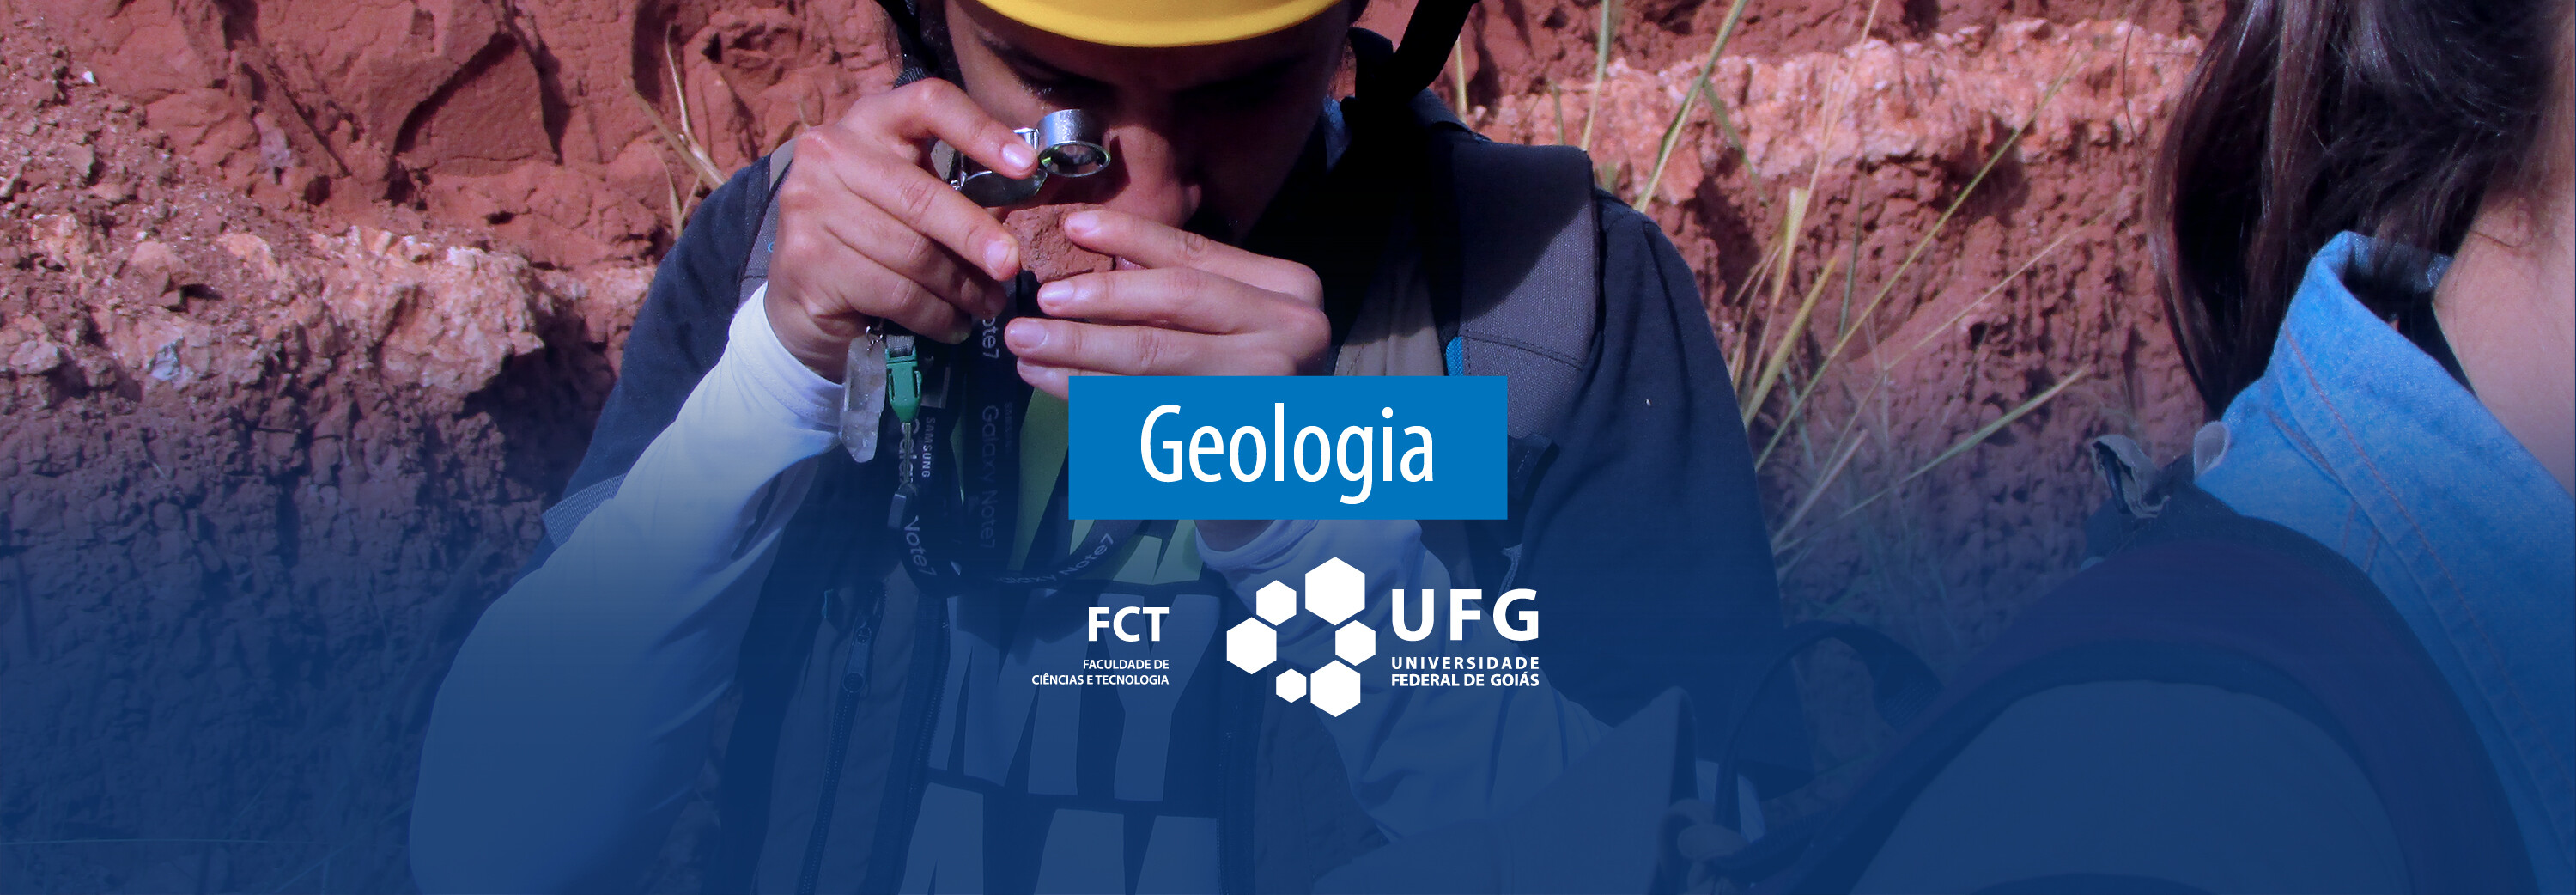 geologia_FCT_banner.j